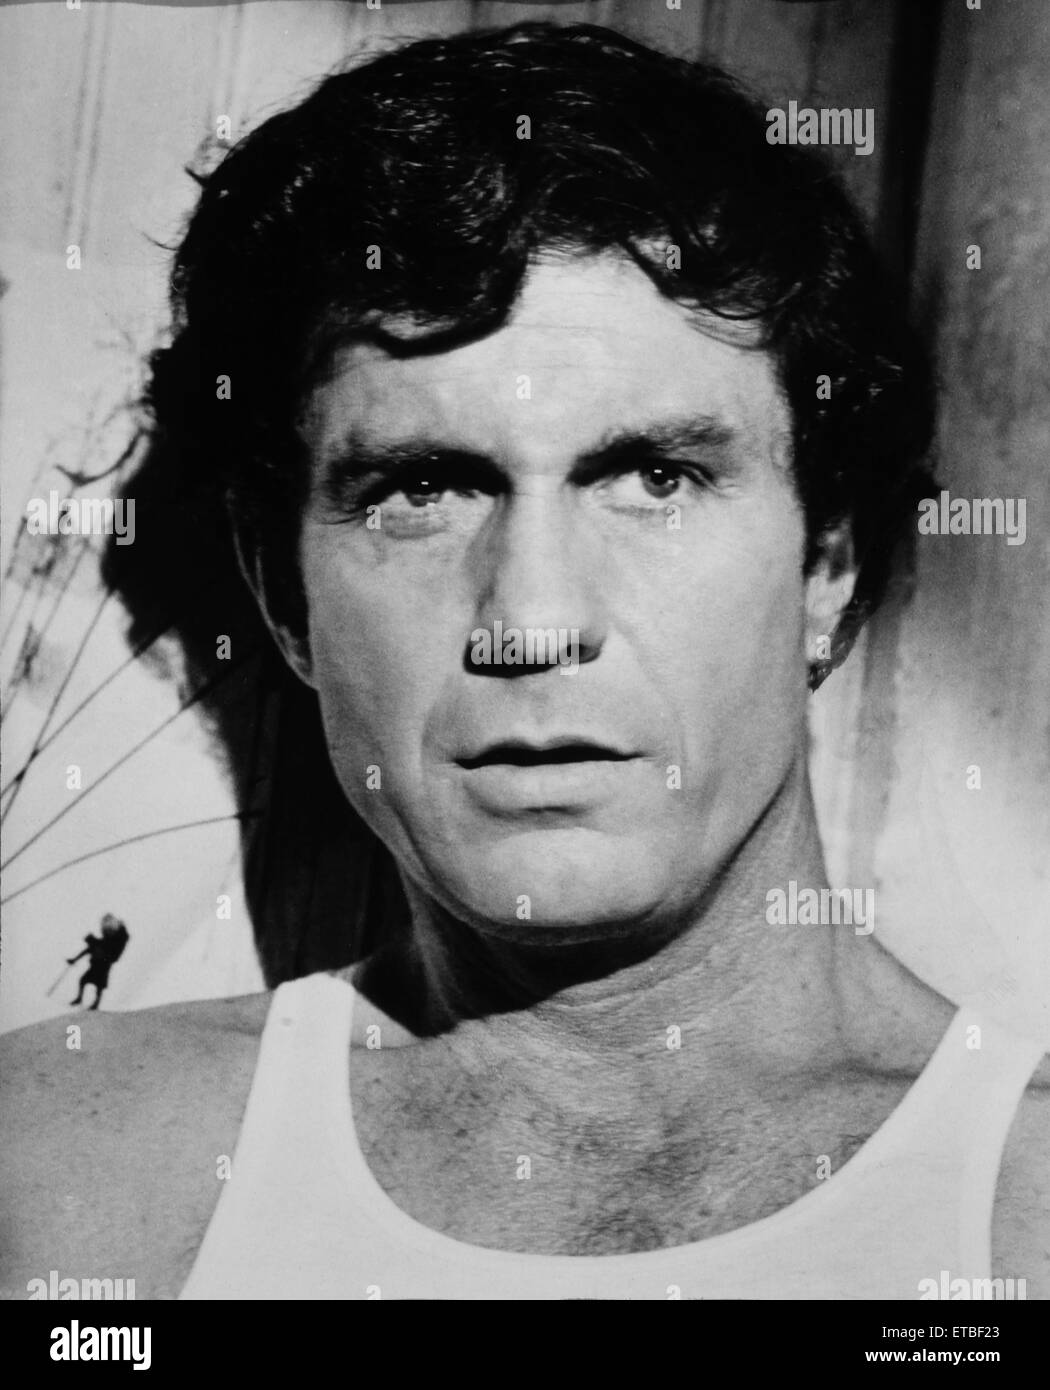 """Cliff Robertson, Portrait from the Film """"Charly"""", 1968 Stock Photo"""